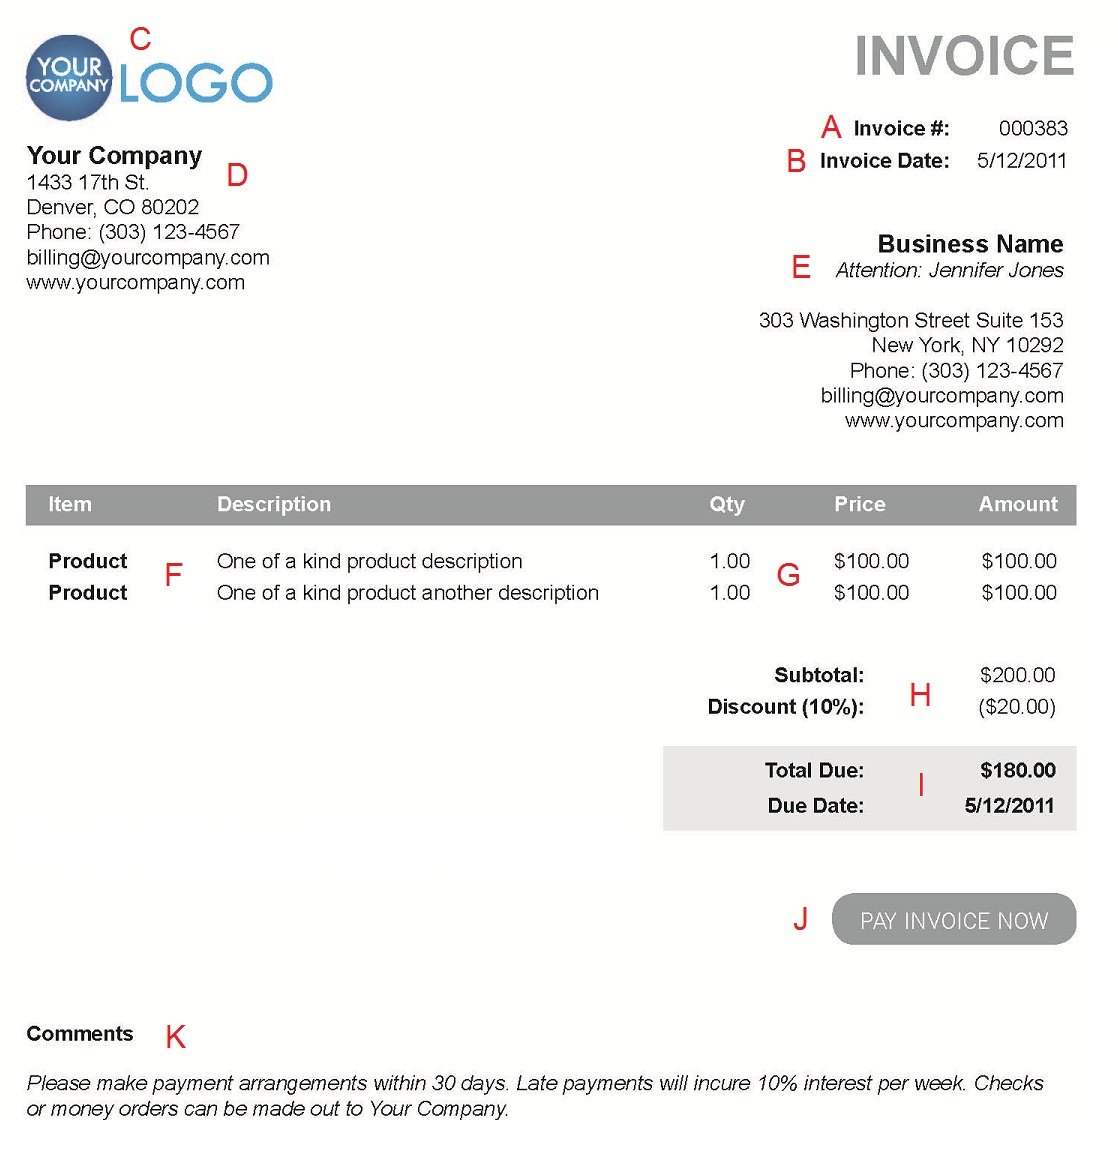 Ultrablogus  Surprising The  Different Sections Of An Electronic Payment Invoice With Magnificent A  With Comely Acknowledgement Receipt Of Money Also Receipt Organization Software In Addition Down Payment Receipt Sample And Receipts Sample As Well As Sample Receipt For Cash Payment Additionally On The Receipt From Paysimplecom With Ultrablogus  Magnificent The  Different Sections Of An Electronic Payment Invoice With Comely A  And Surprising Acknowledgement Receipt Of Money Also Receipt Organization Software In Addition Down Payment Receipt Sample From Paysimplecom